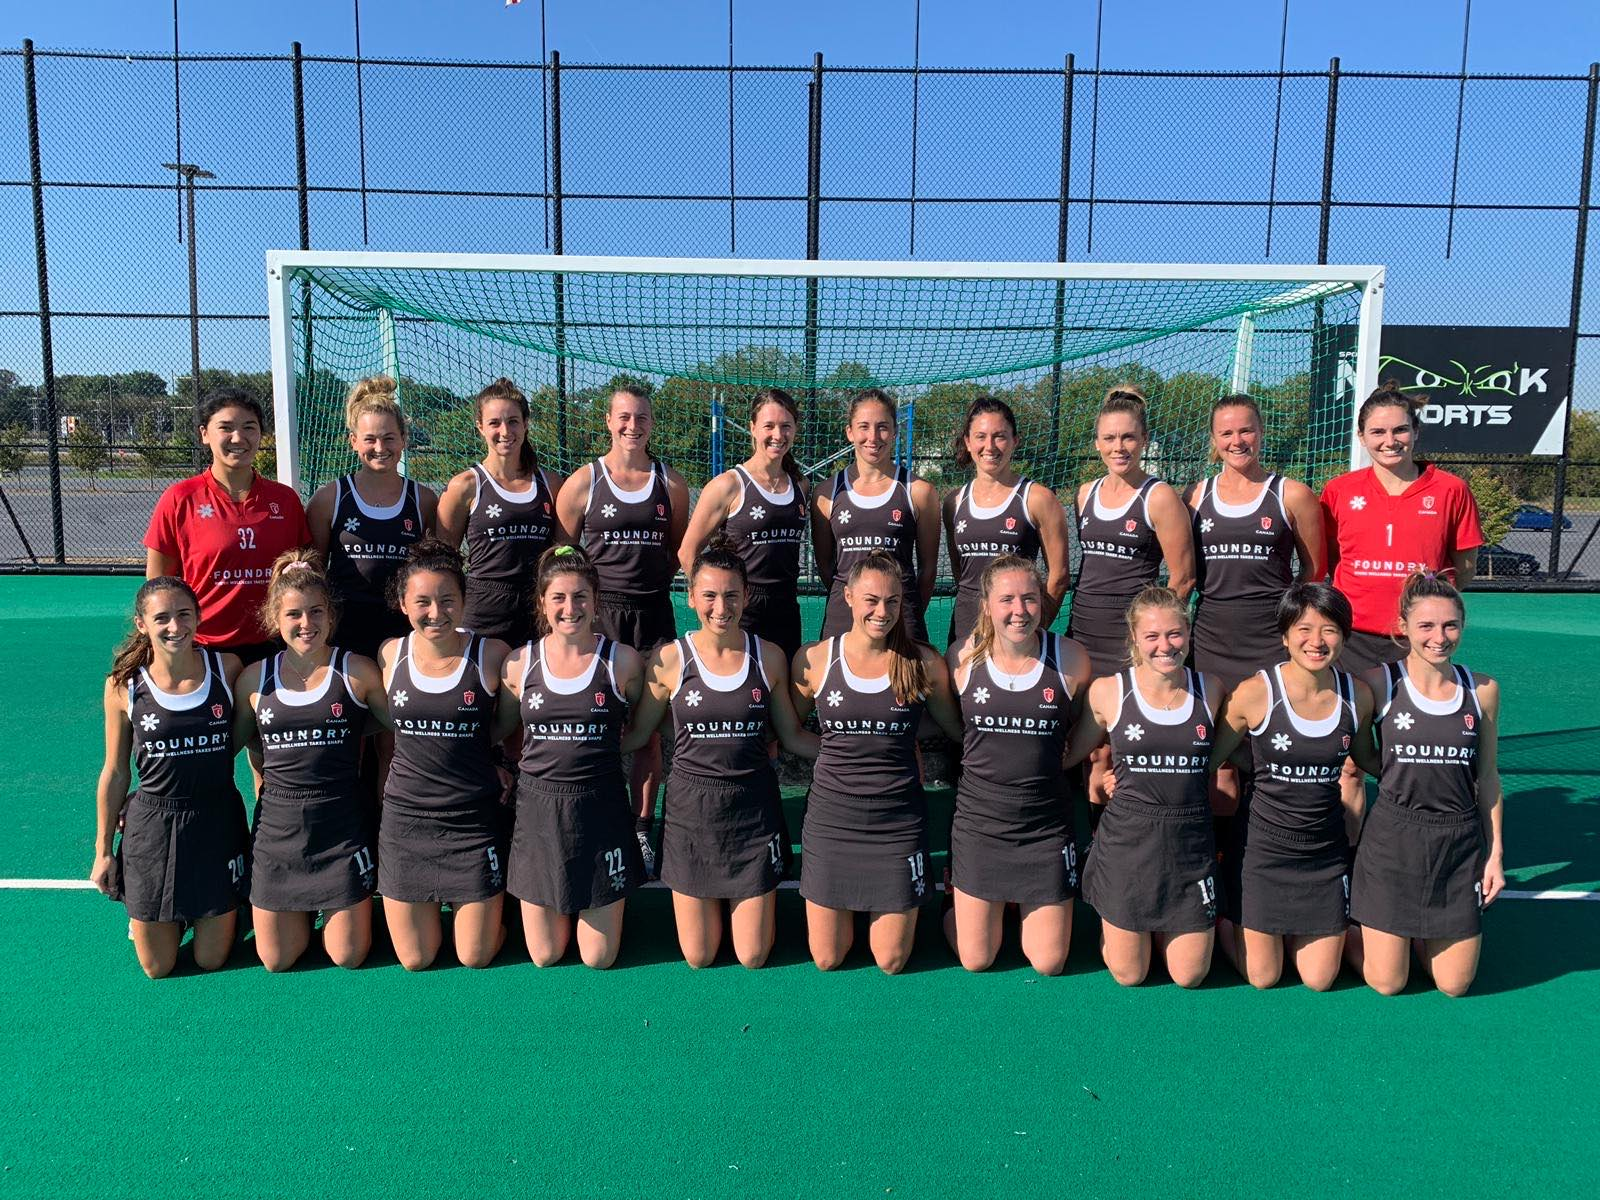 Team Canada. Photo Credit: courtesy of Team Canada women's field hockey team